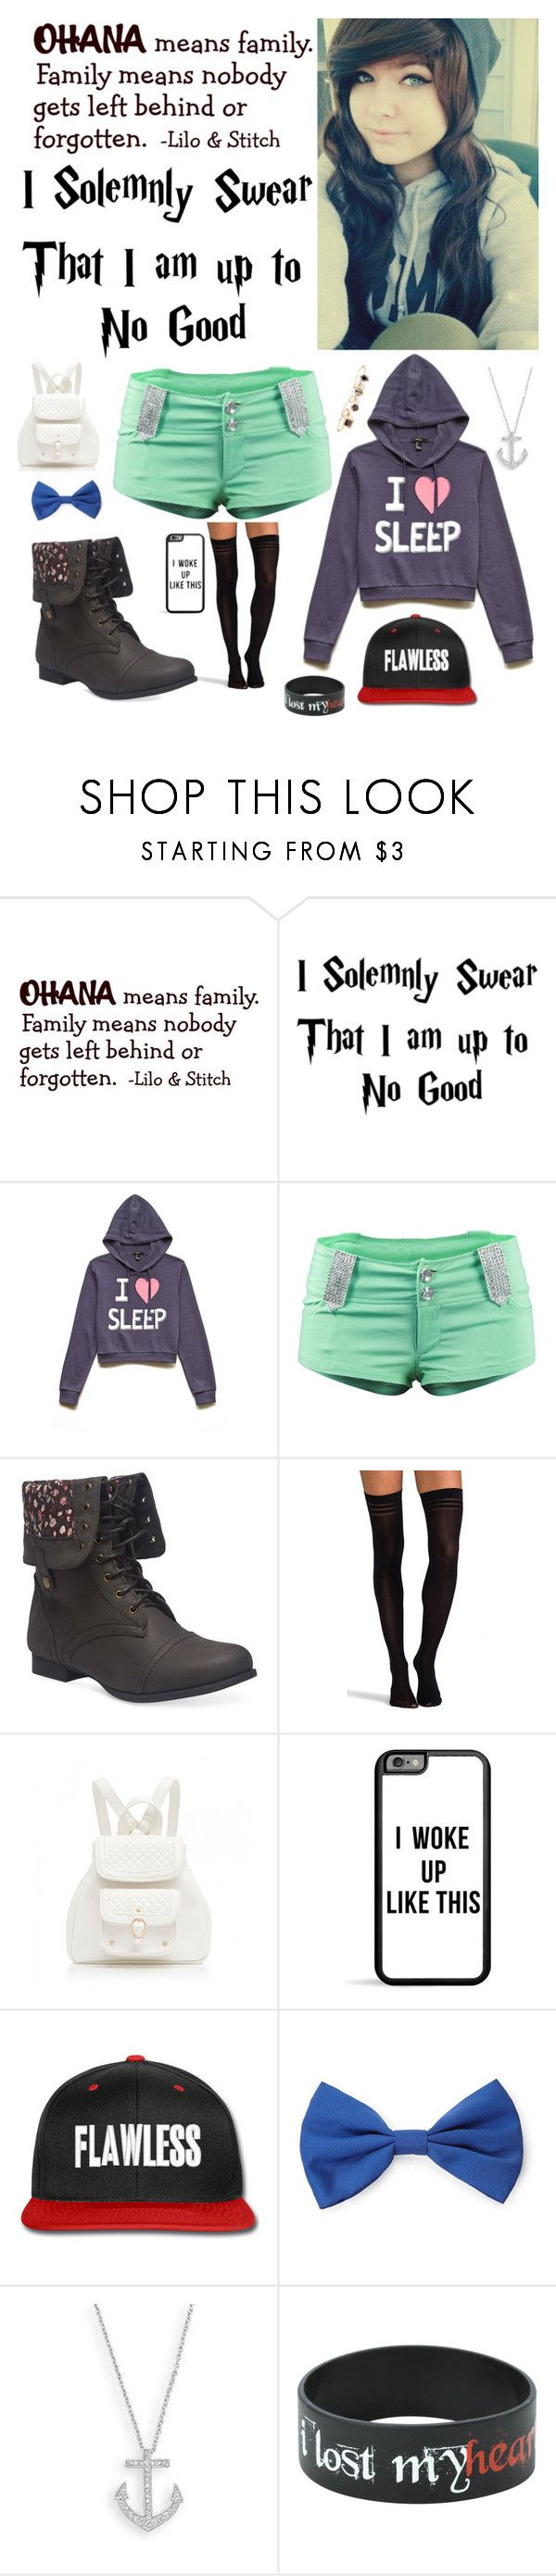 """""""""""Going jogging to get away"""" - Mary West"""" by nationalnerd ❤ liked on Polyvore featuring WALL, Forever 21, Wet Seal, Pretty Polly, Forever New and Sole Society"""